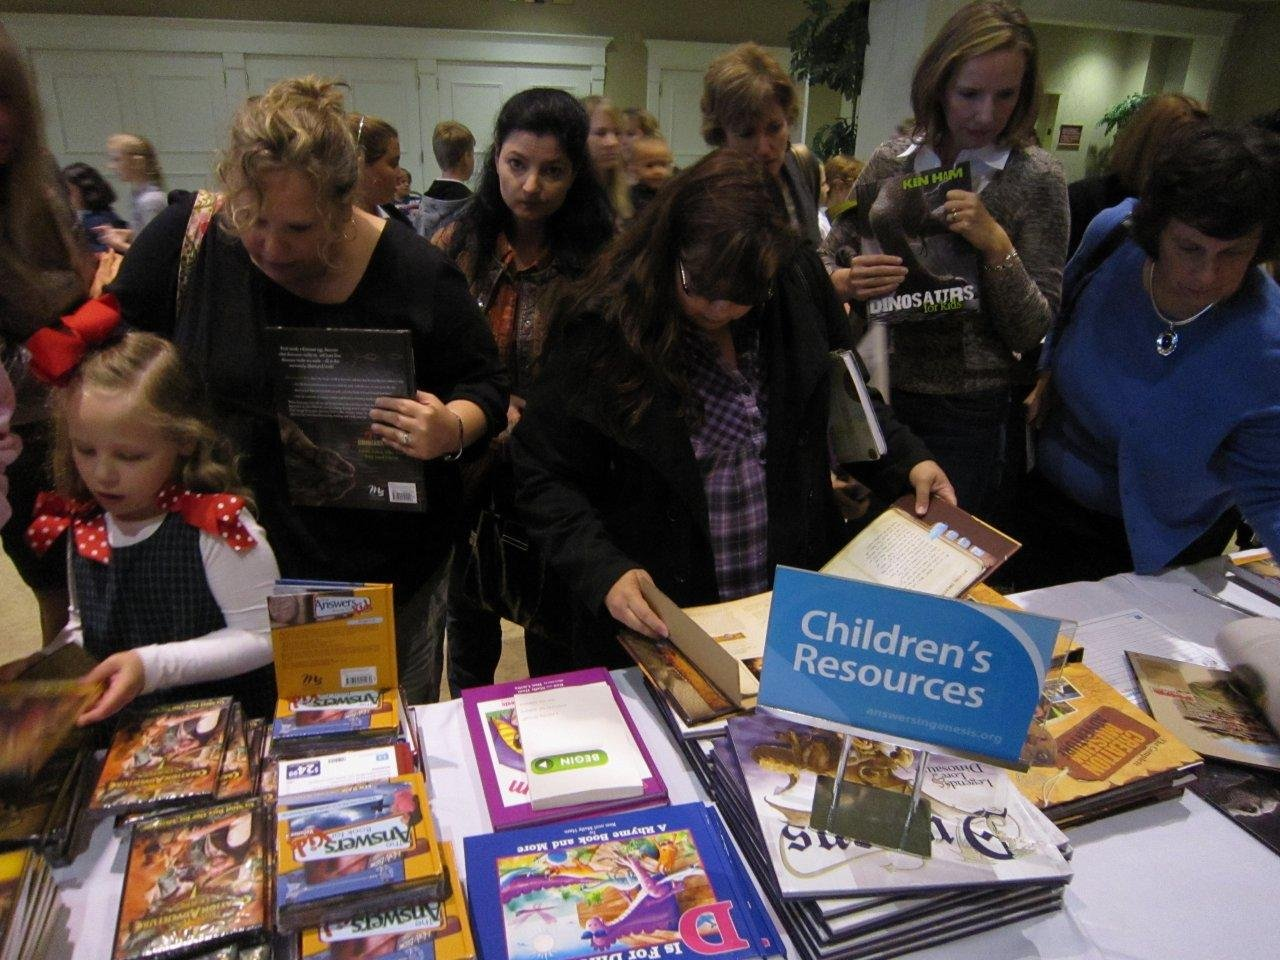 Kids and parents at the resource table